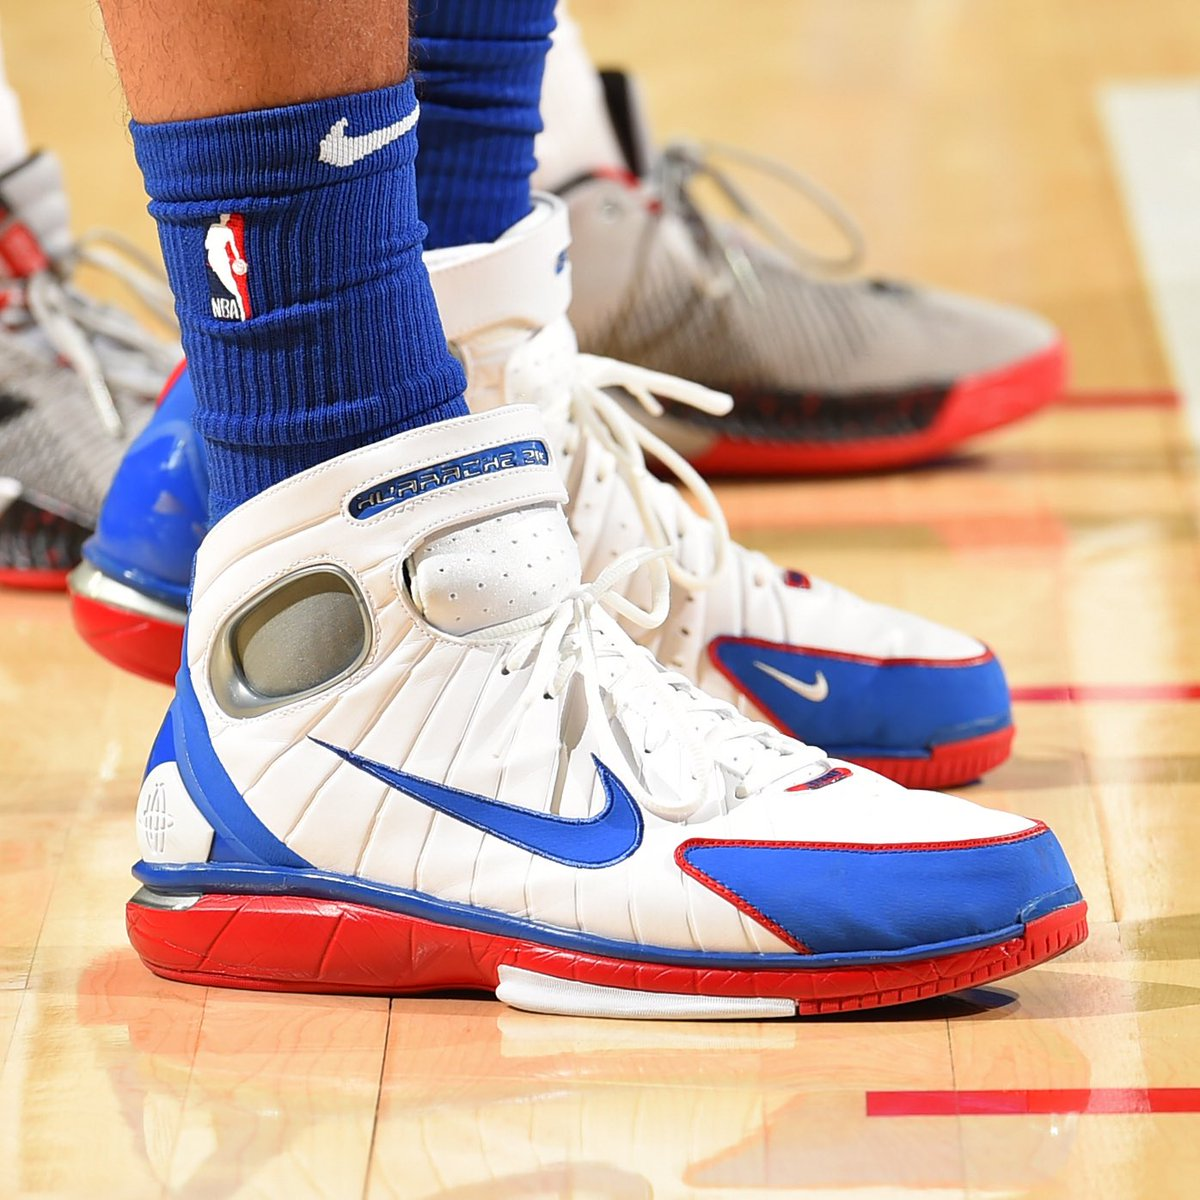 f03ea2353244 solewatch landryshamet wearing the all star nike air zoom huarache 2k4  david dow